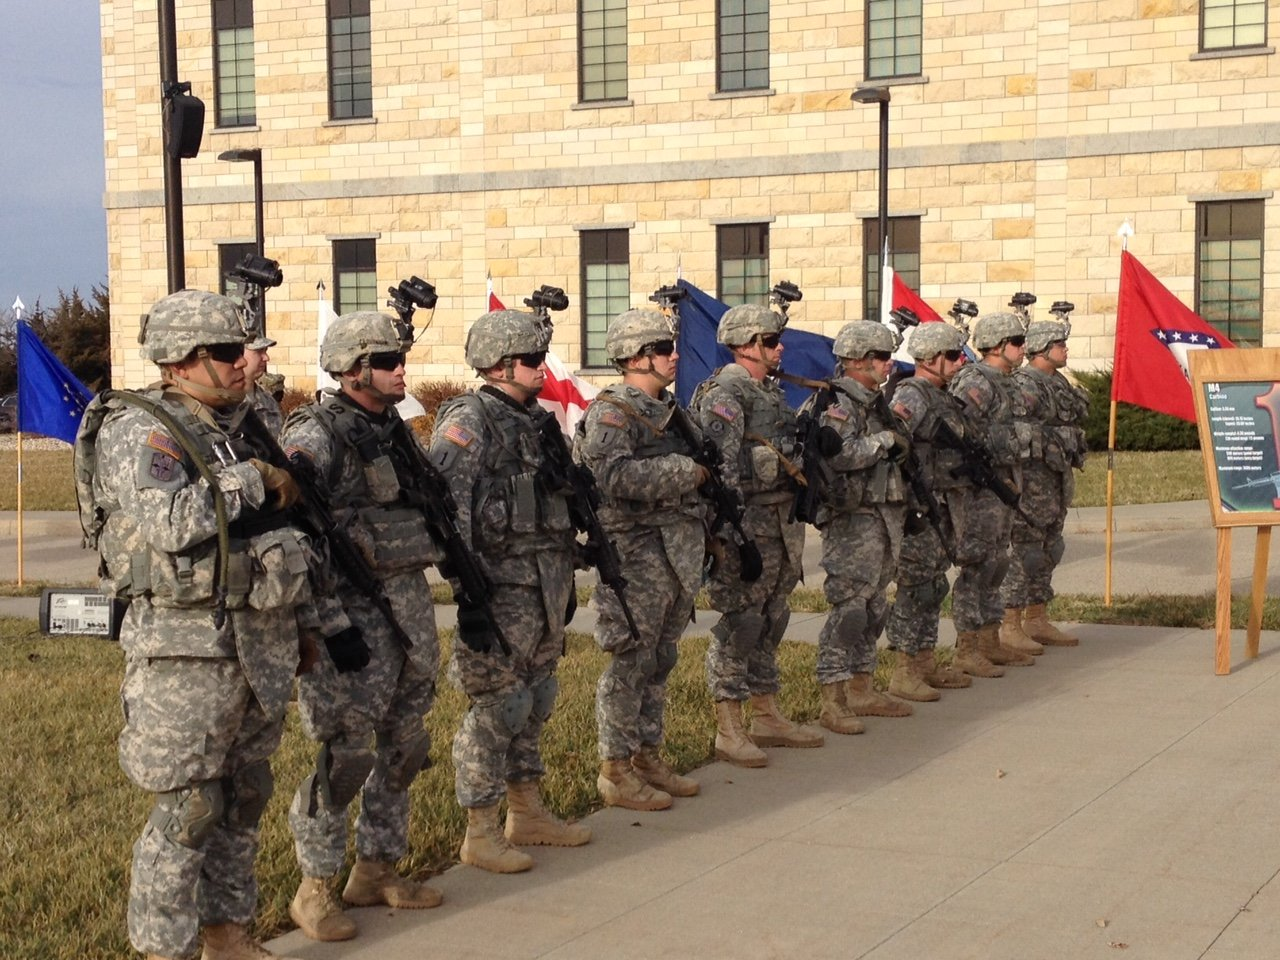 Soldiers with the Big Red One, First Infantry Division, at Fort Riley. (Photo by J. Schafer)